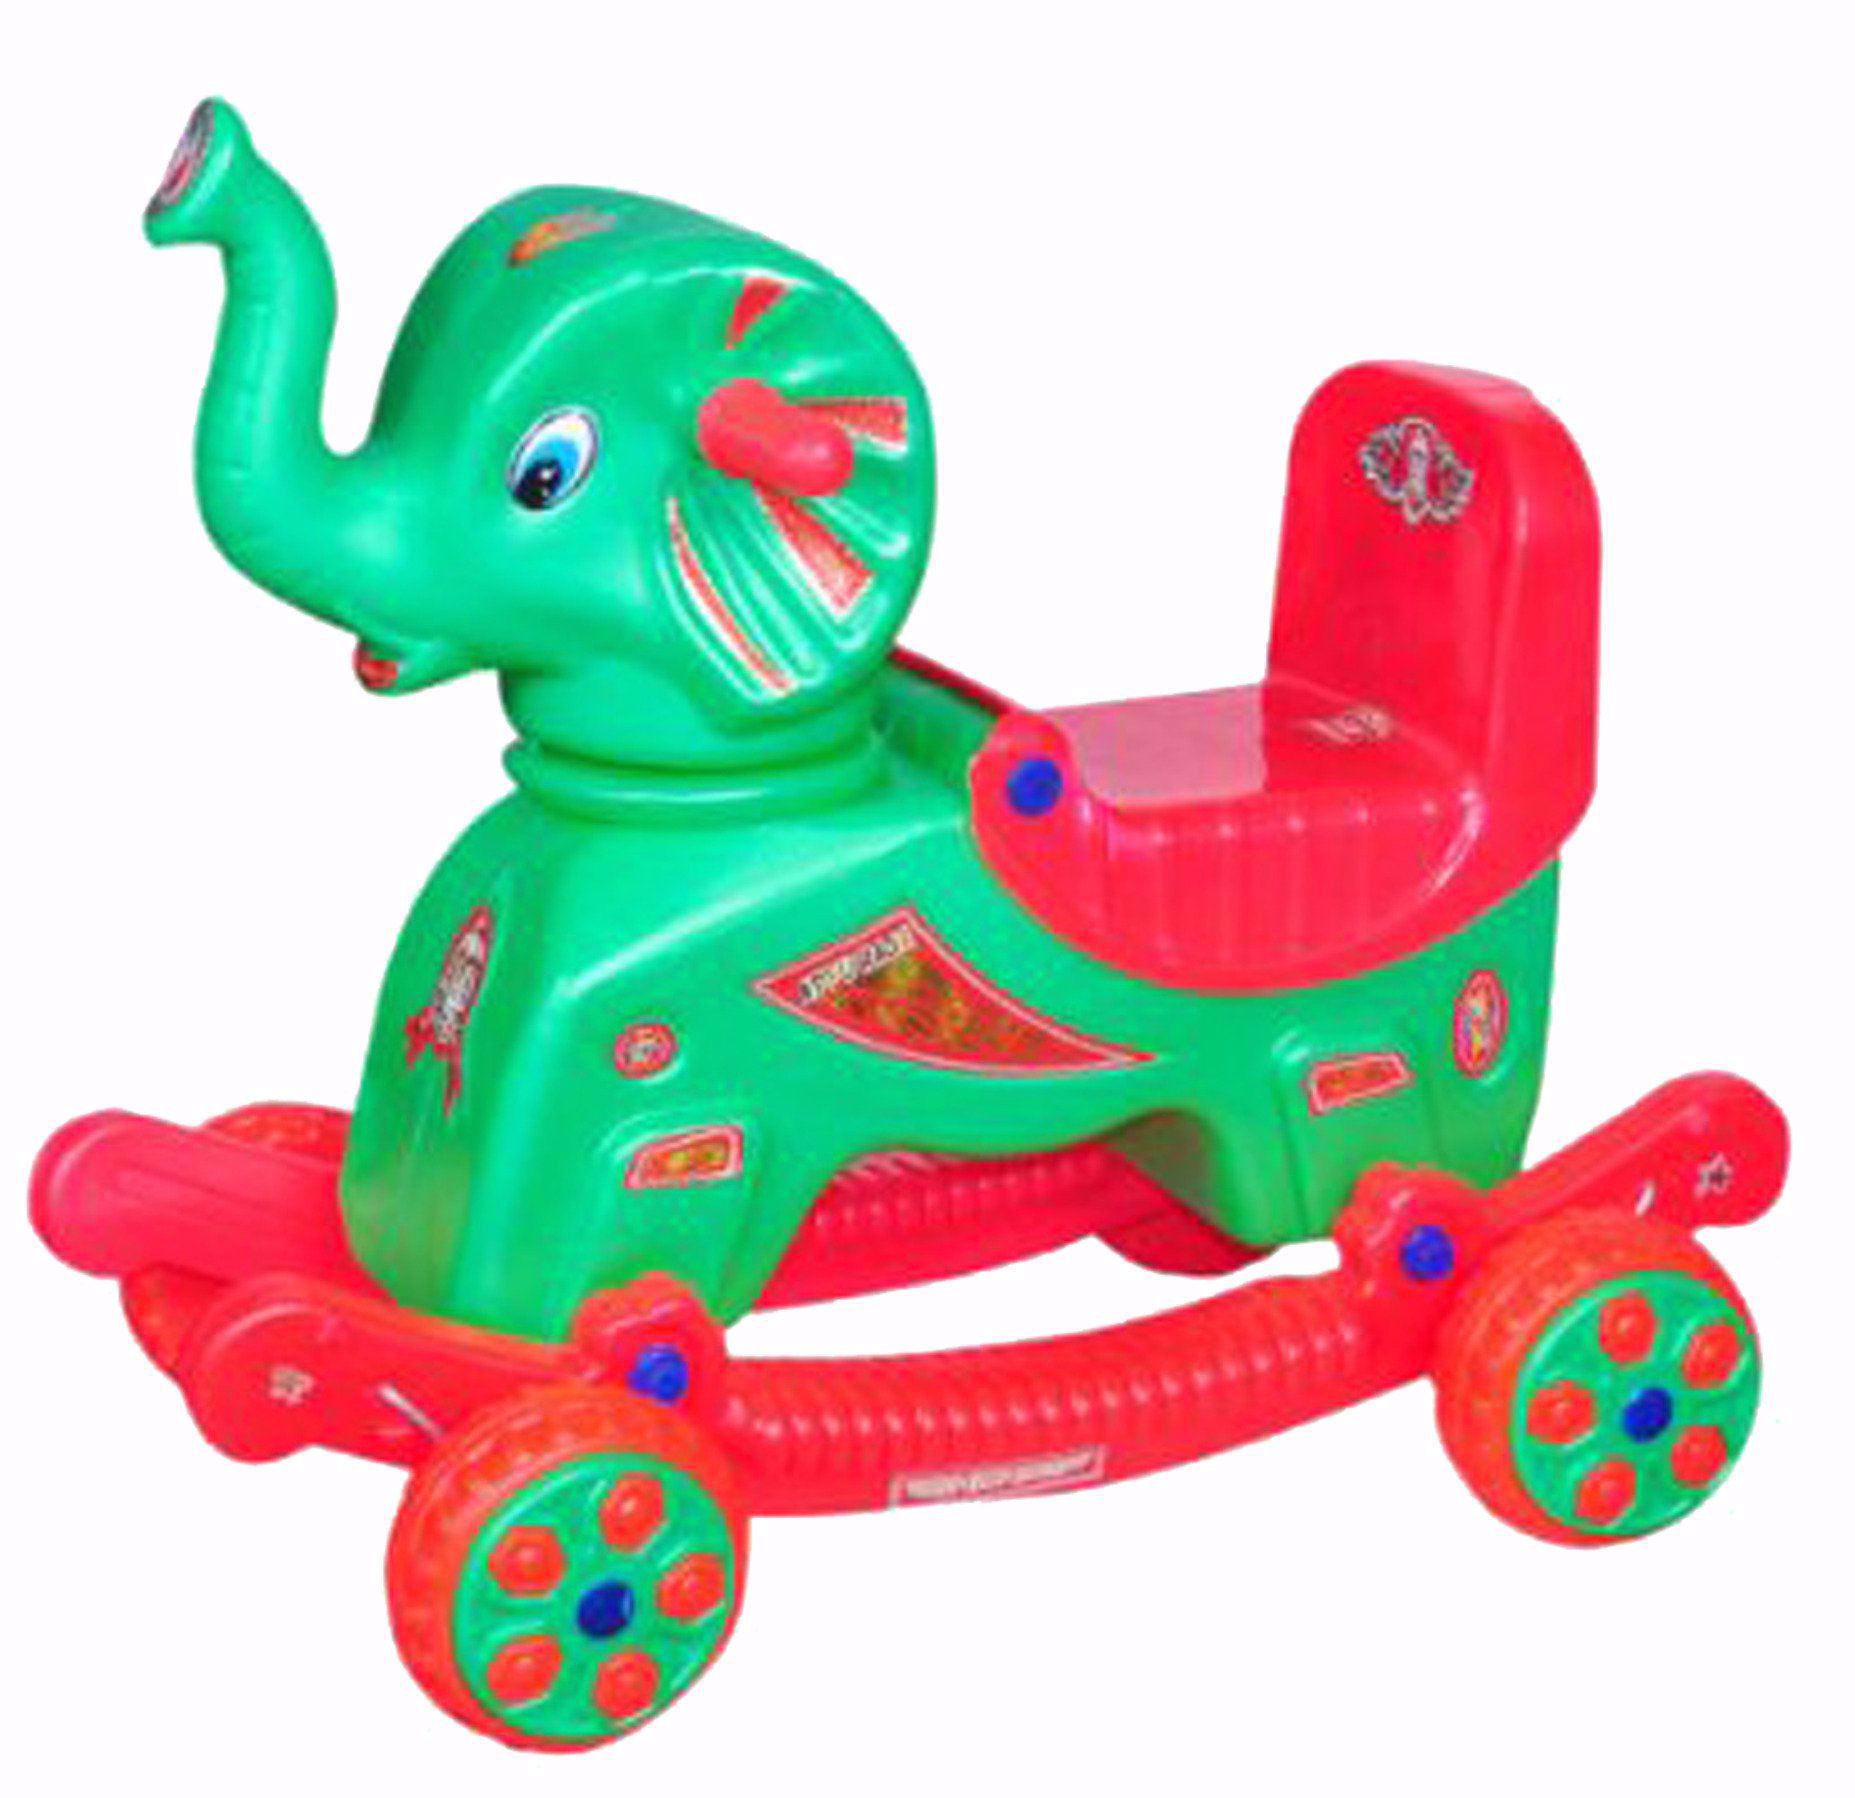 Baby Musical Elephant Green & Red